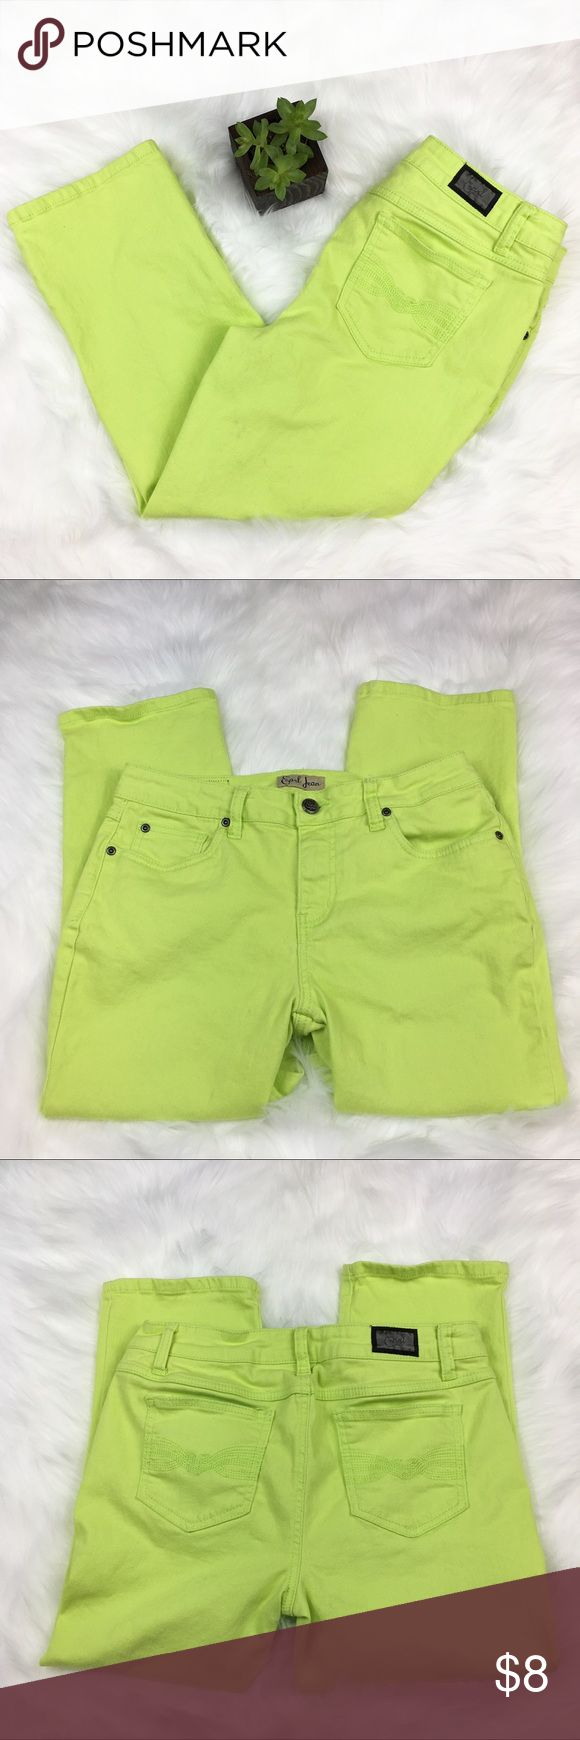 Earl Jeans Lime Green Capris Earl Jeans Lime Green Capris. Size 8. Approximate measurements flat laid are 22' inseam and 9' rise. GUC but has some light staining. Please see pictures. ❌No trades ❌ Modeling ❌No PayPal or off Posh transactions ❤️ I 💕Bundles ❤️Reasonable Offers PLEASE ❤️ Earl Jeans Pants Capris